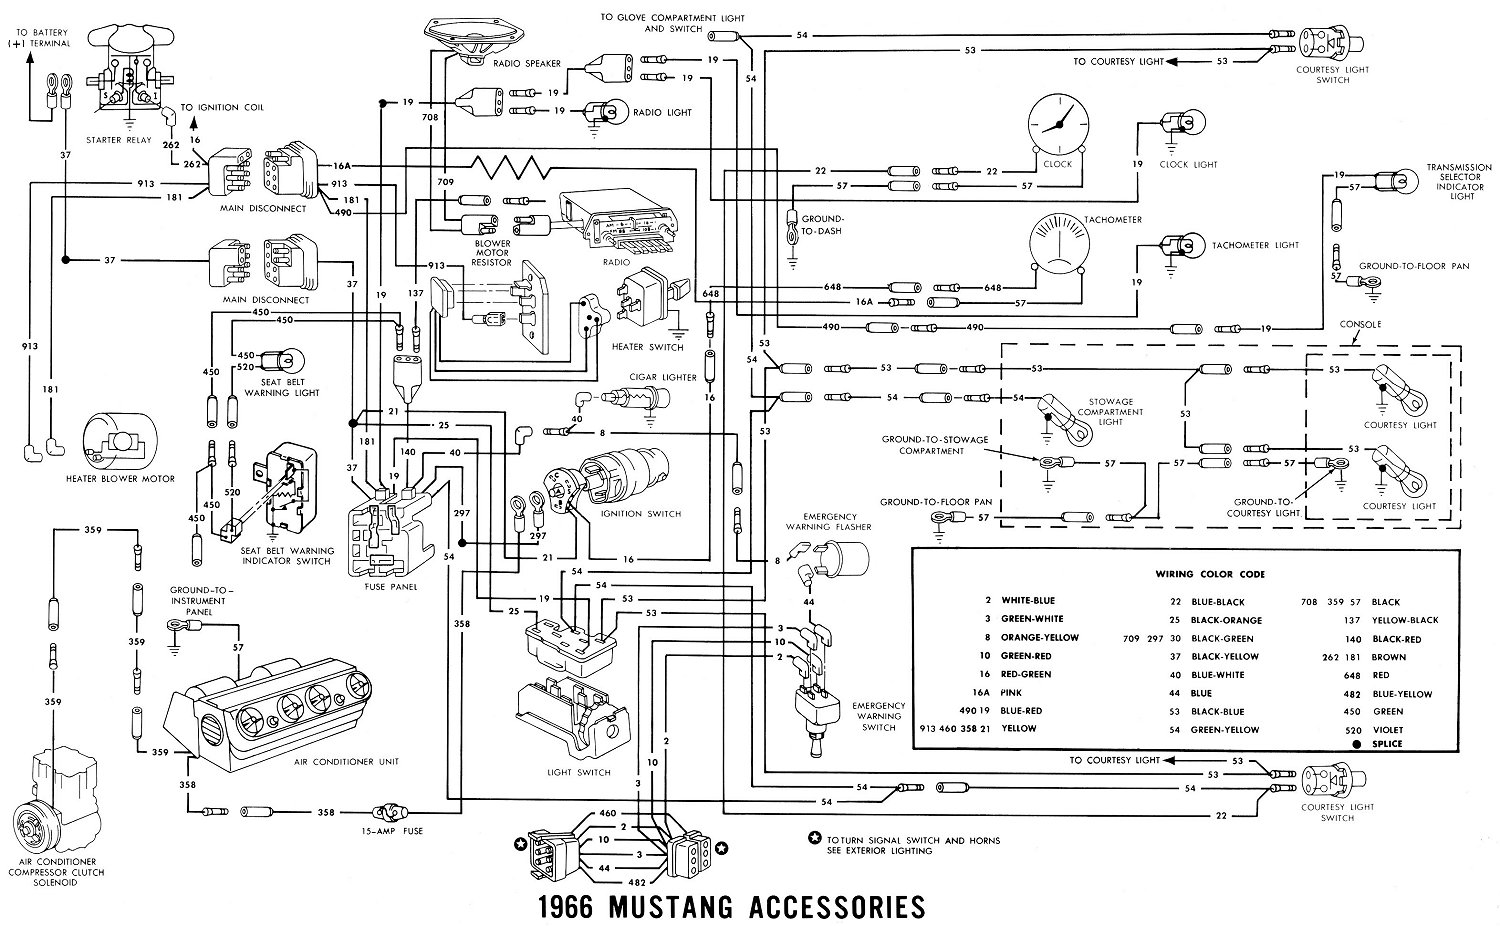 DIAGRAM] 40 Ford Mustang Wiring Diagram FULL Version HD Quality ...